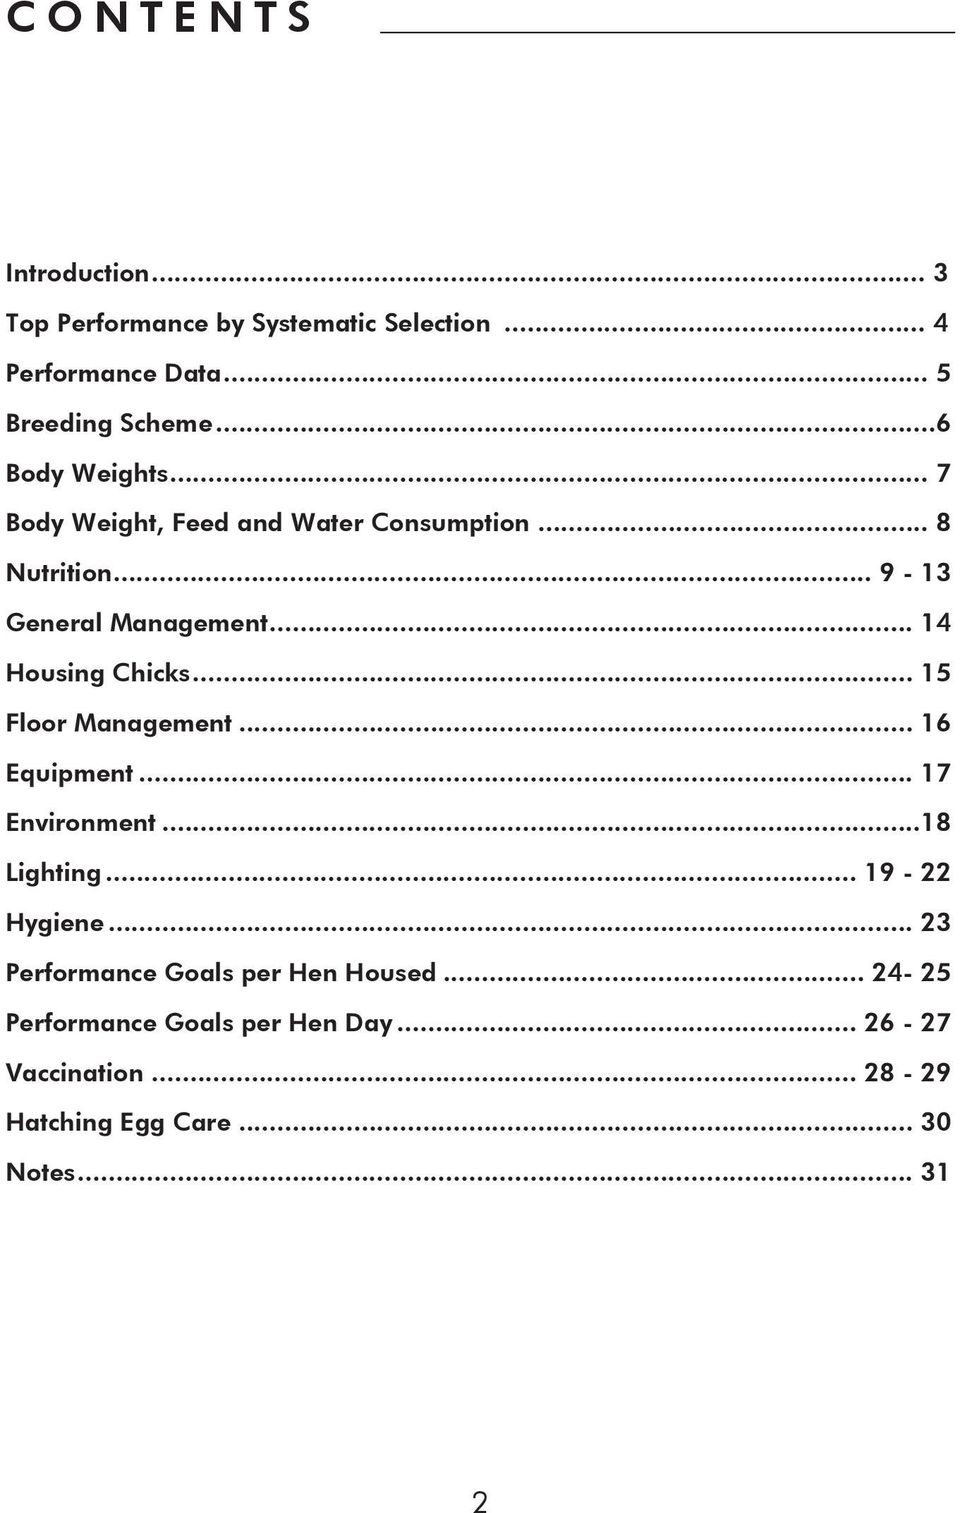 PARENT STOCK MANAGEMENT GUIDE LOHMANN BROWN - PDF